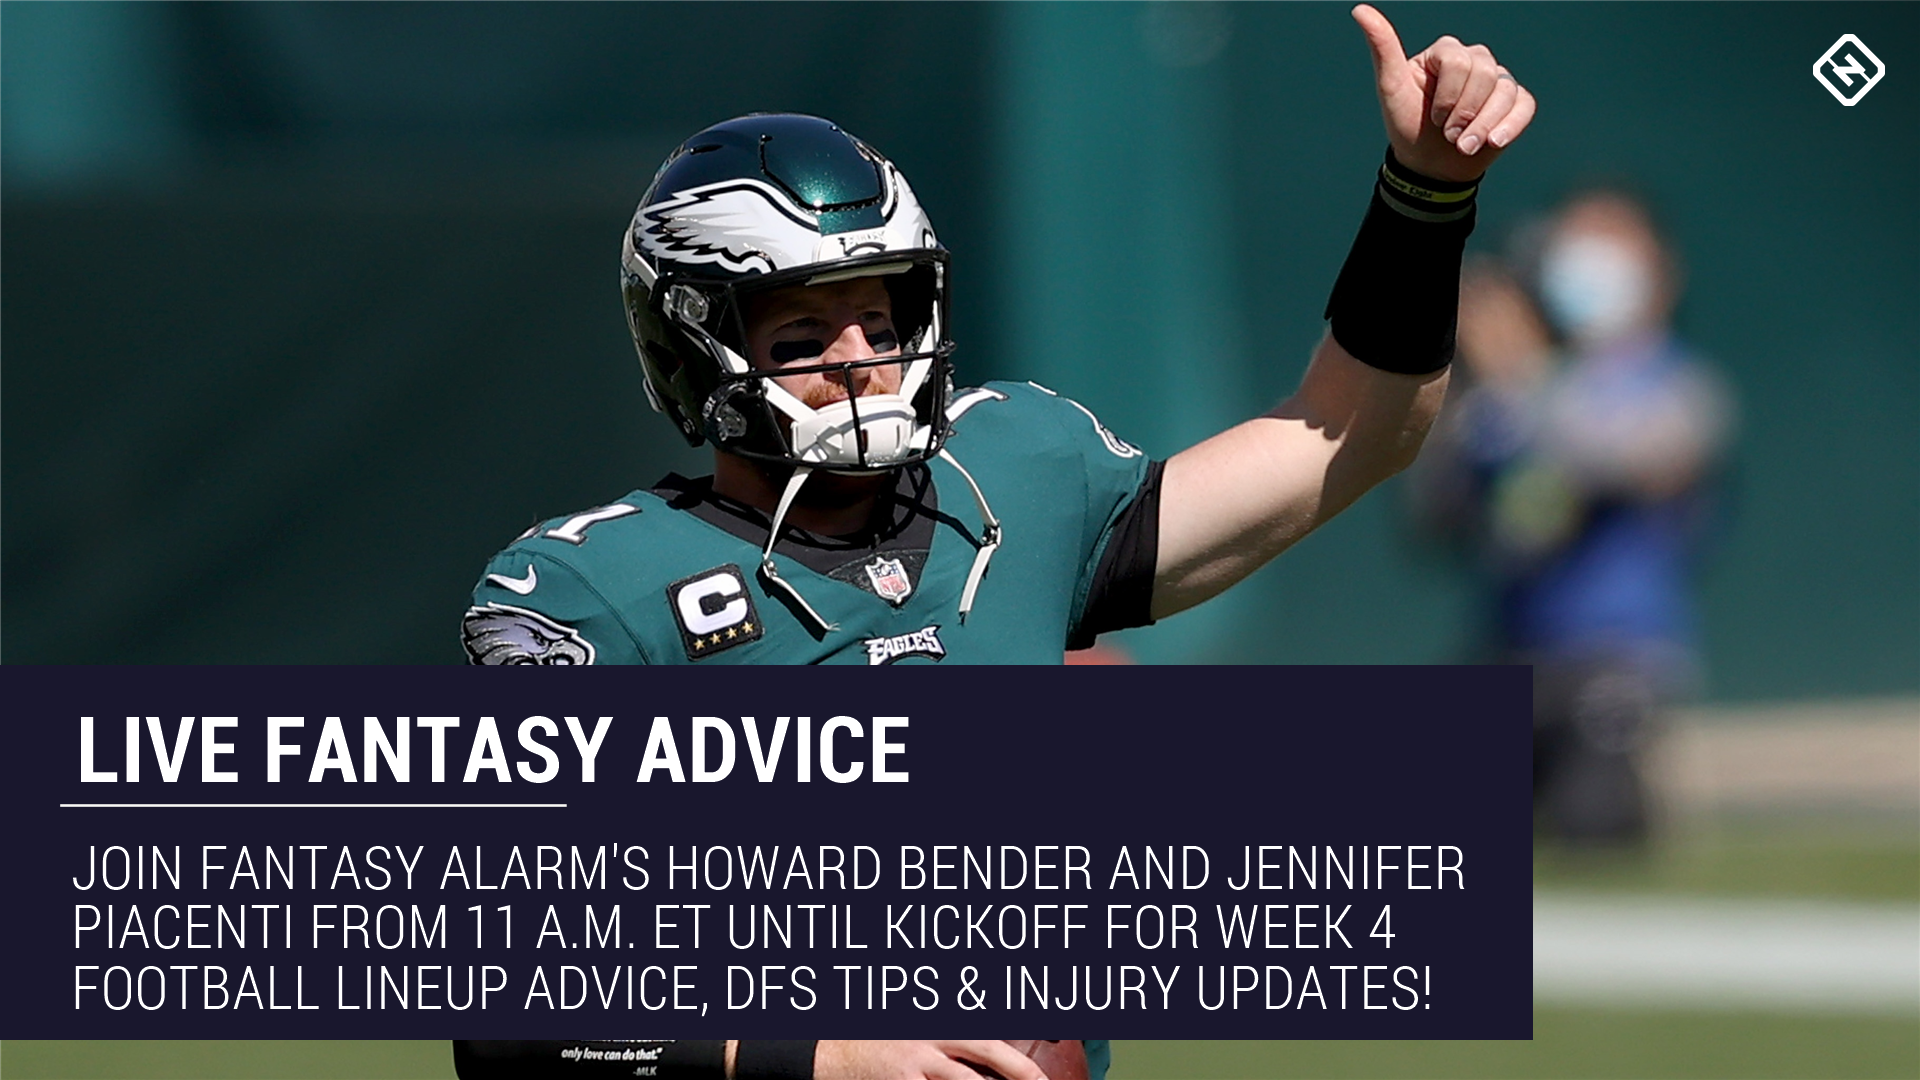 Live Week 4 Fantasy Football Advice: Injury updates, start 'em sit 'em, NFL DFS tips, more 1